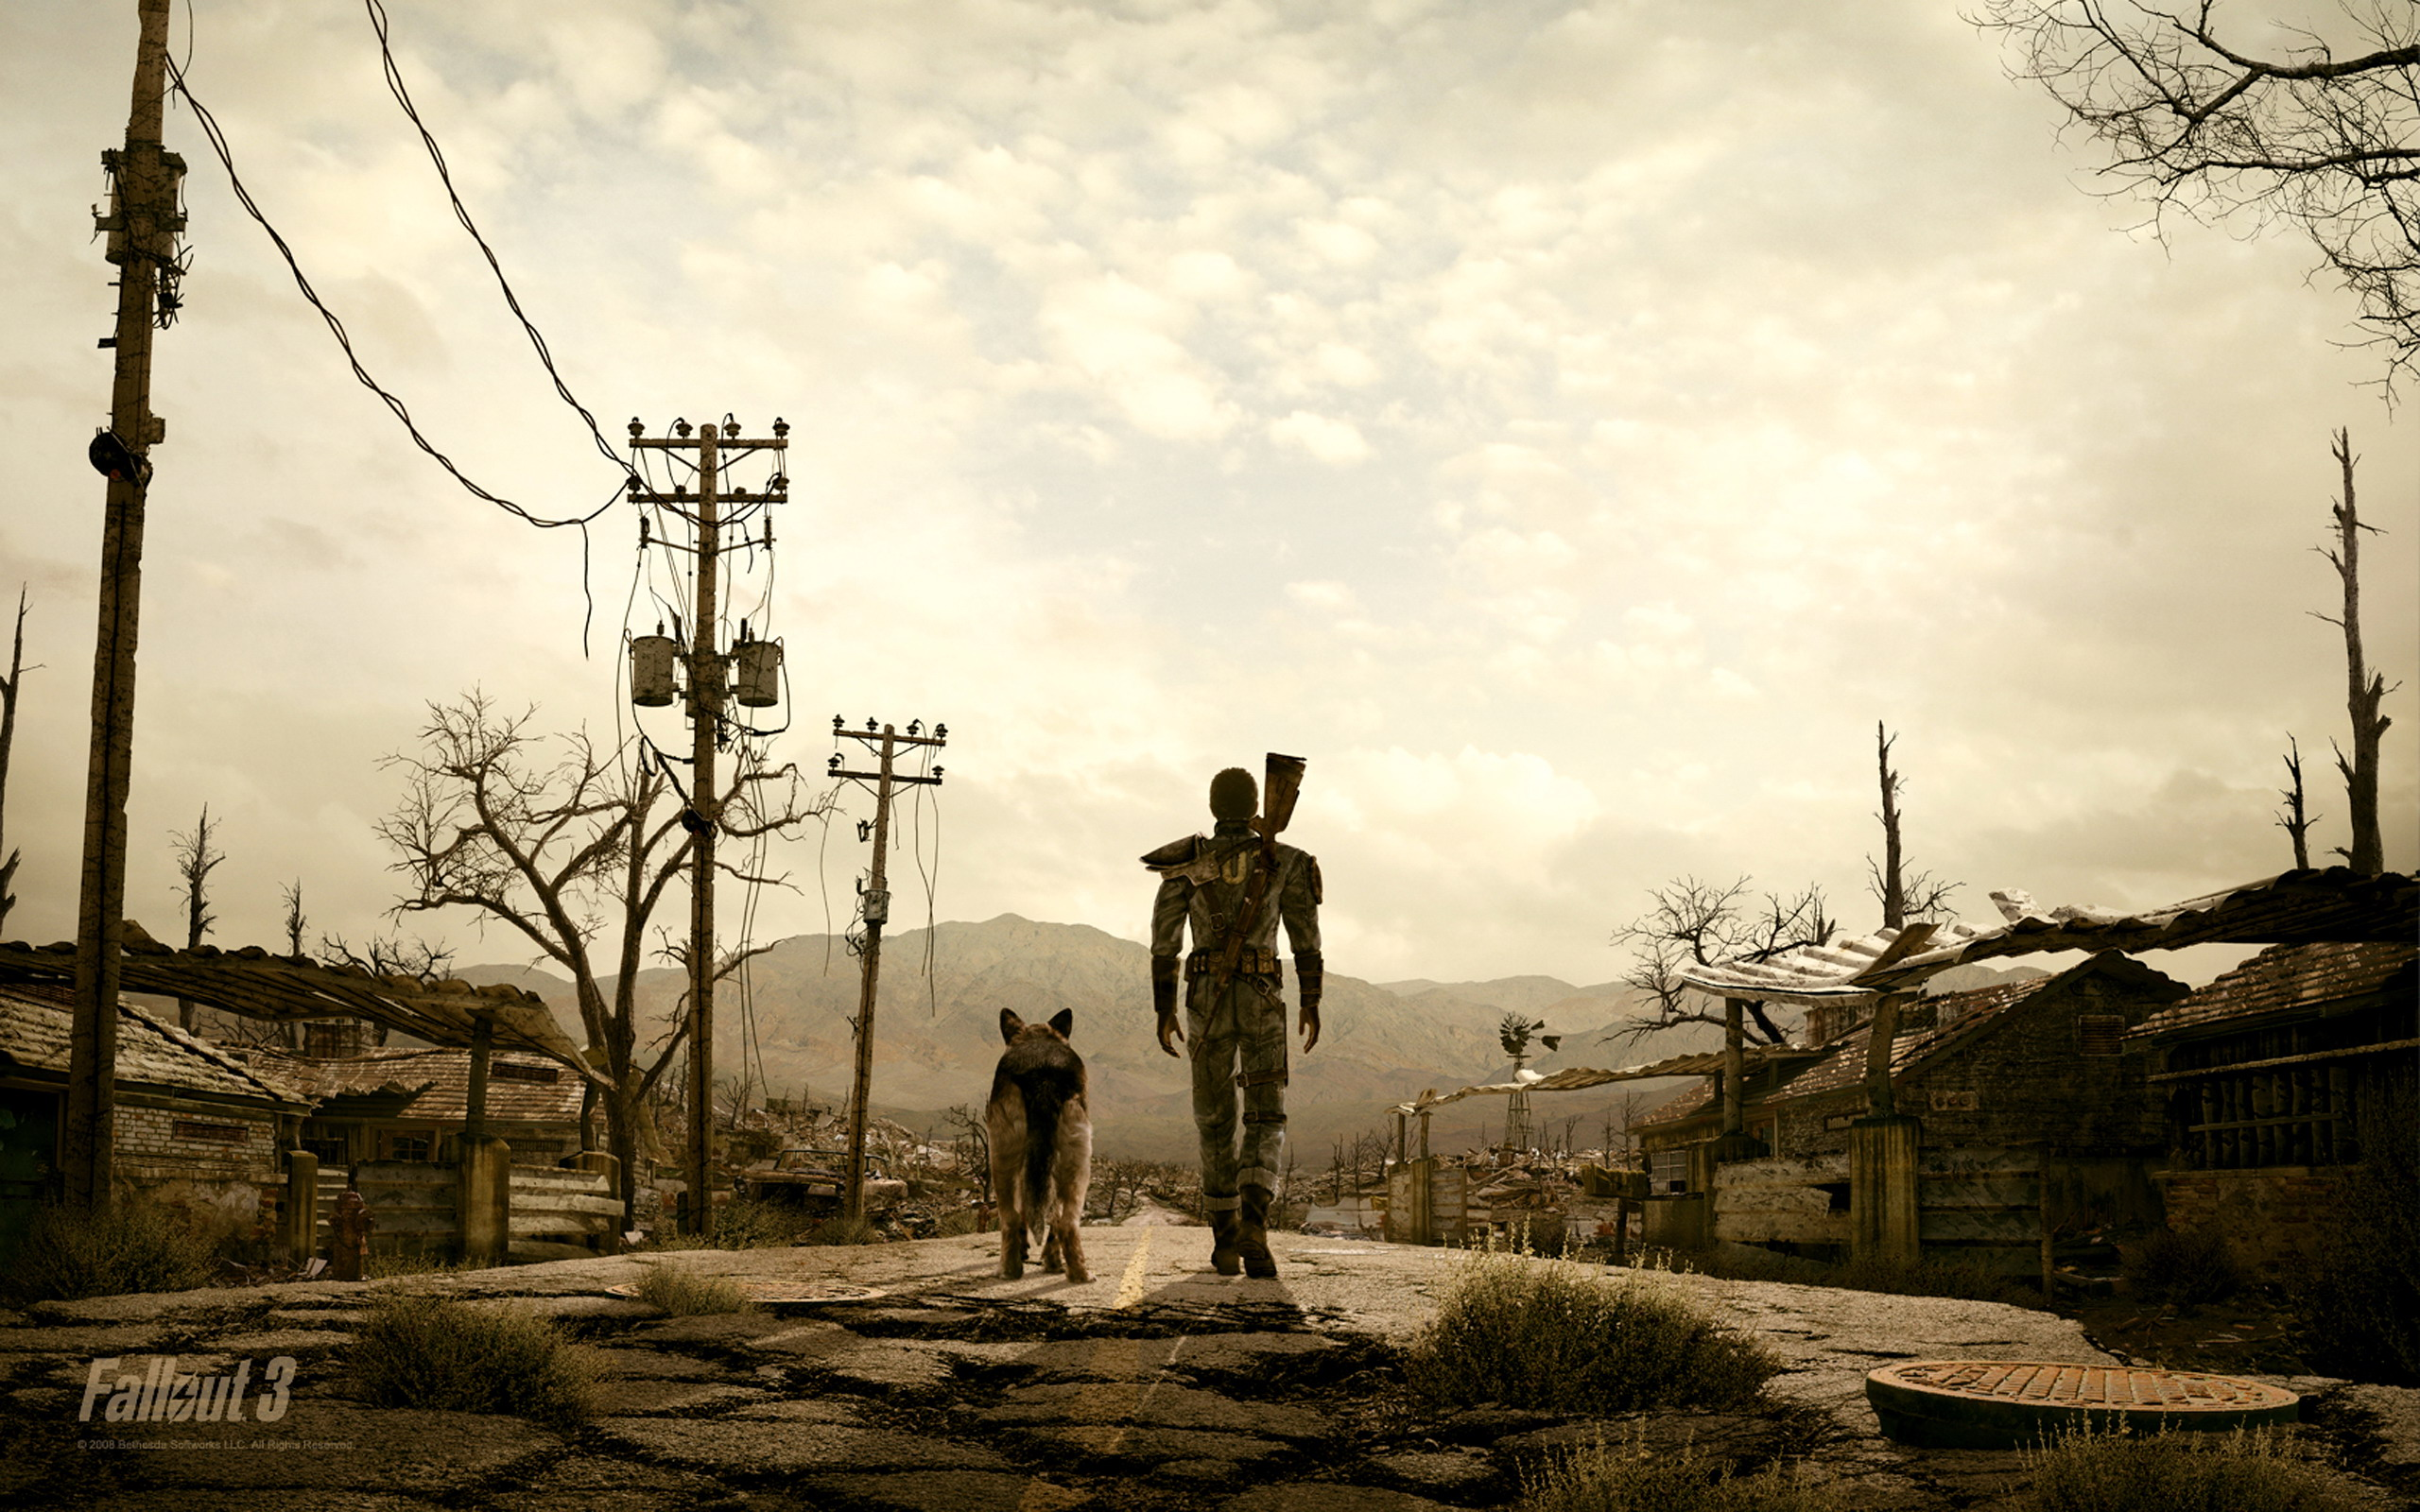 193 fallout hd wallpapers background images wallpaper abyss hd wallpaper background image id281850 thecheapjerseys